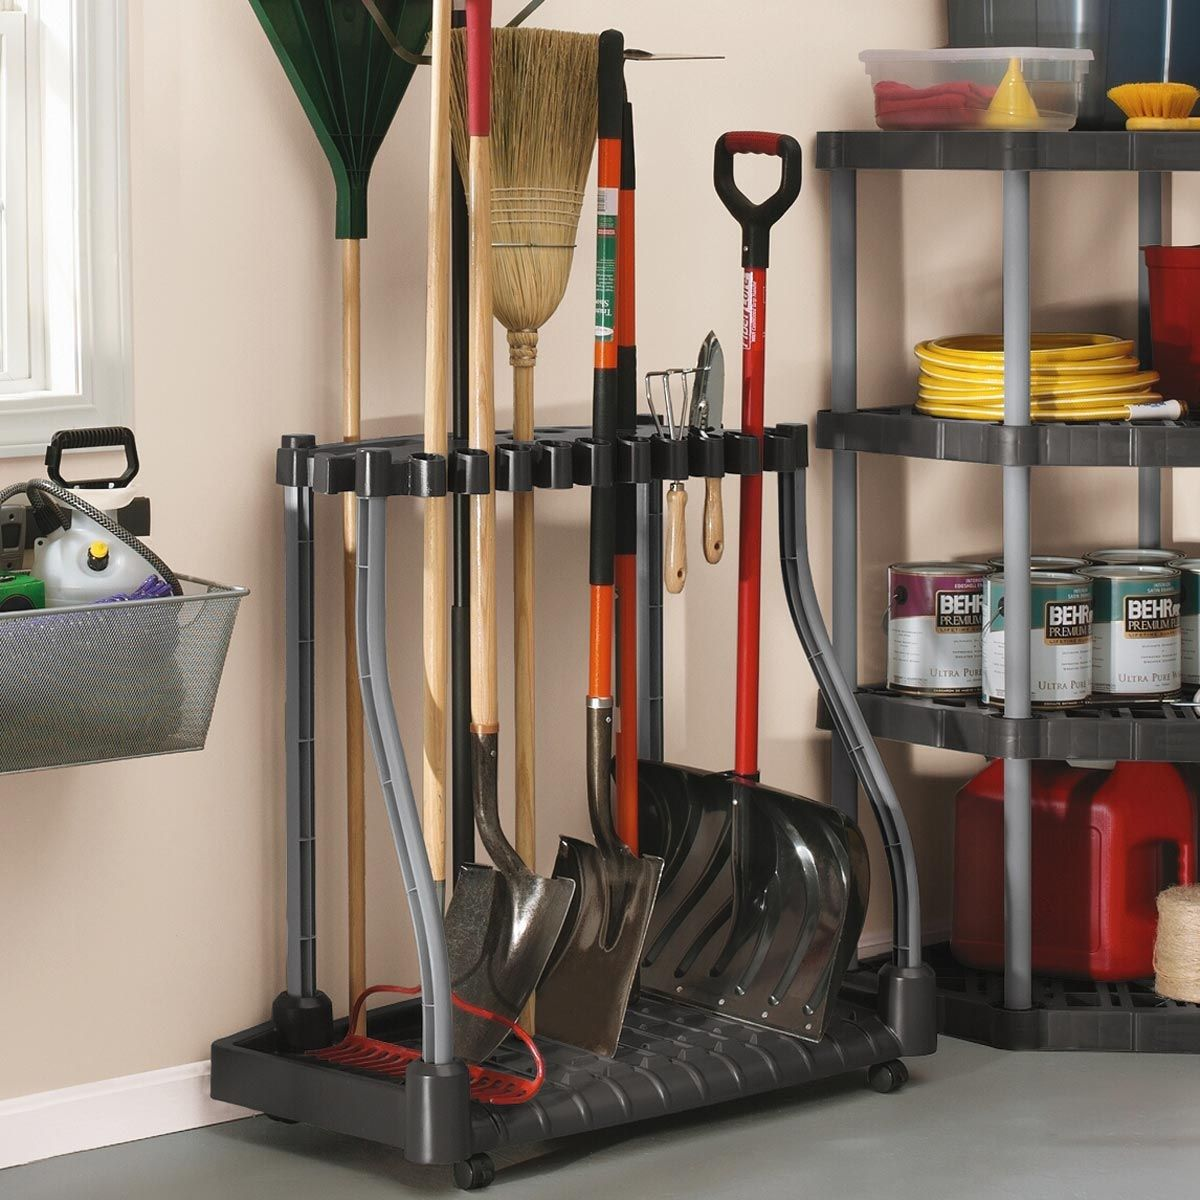 10 Diy Garage Shelves Ideas To Maximize Garage Storage: 10 Ideas For Hanging Garden Tools, Most Of The Brilliant